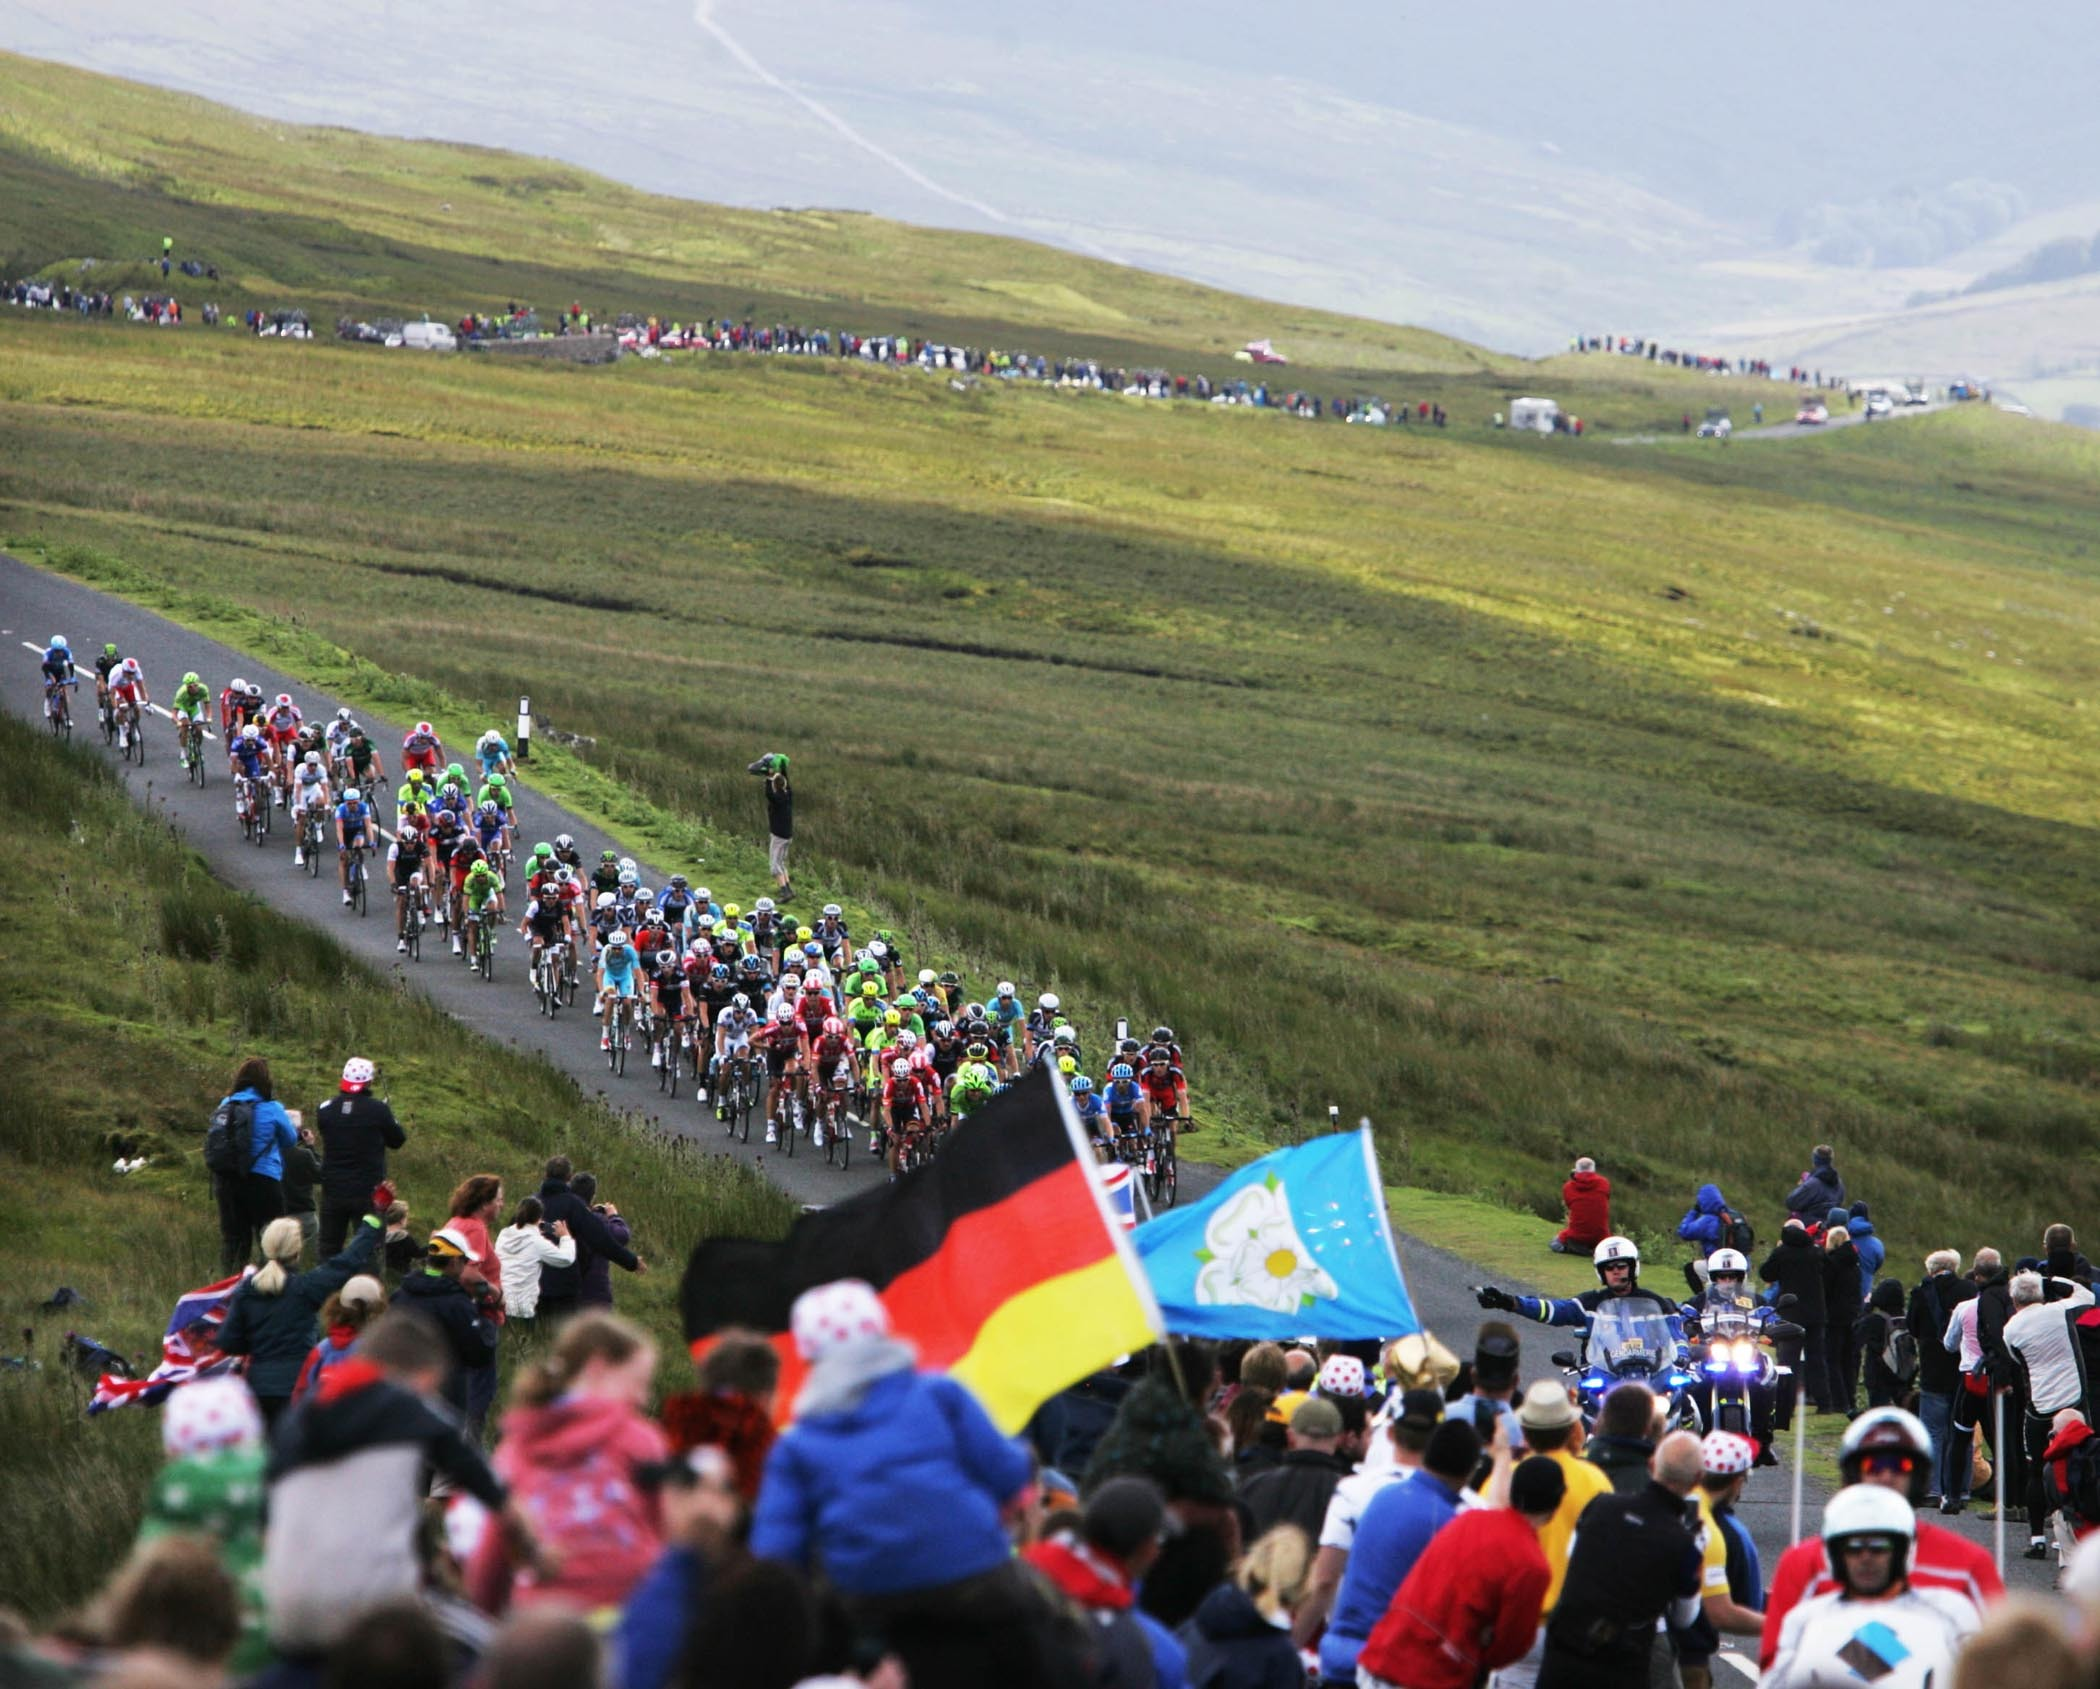 LE TOUR: The peloton makes it's way over Buttertubs Pass in the Yorkshire Dales. Work now needs to begin on capitalising on the exposure Yorkshire received in order to boost tourism, says head of tourism network